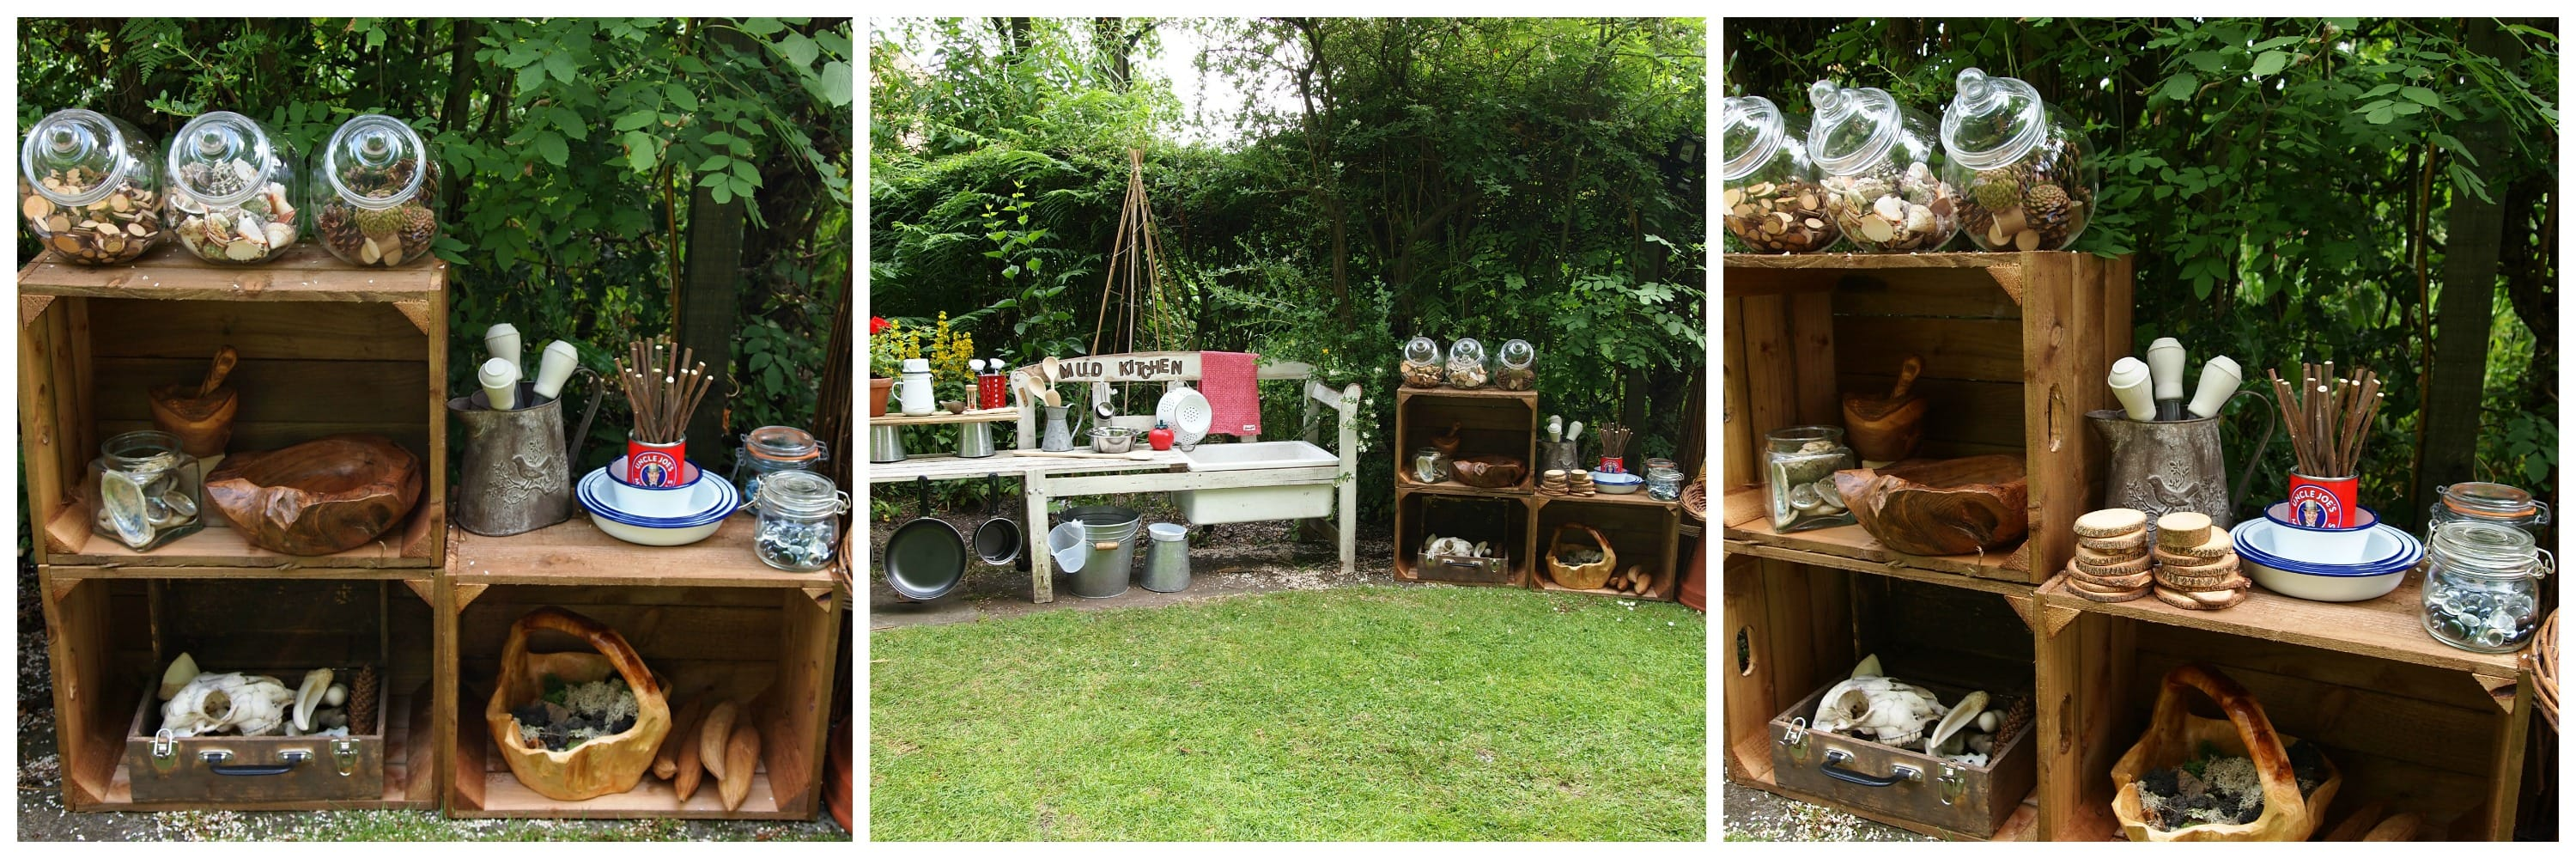 Make A Mud Texture Kitchen It S A Must